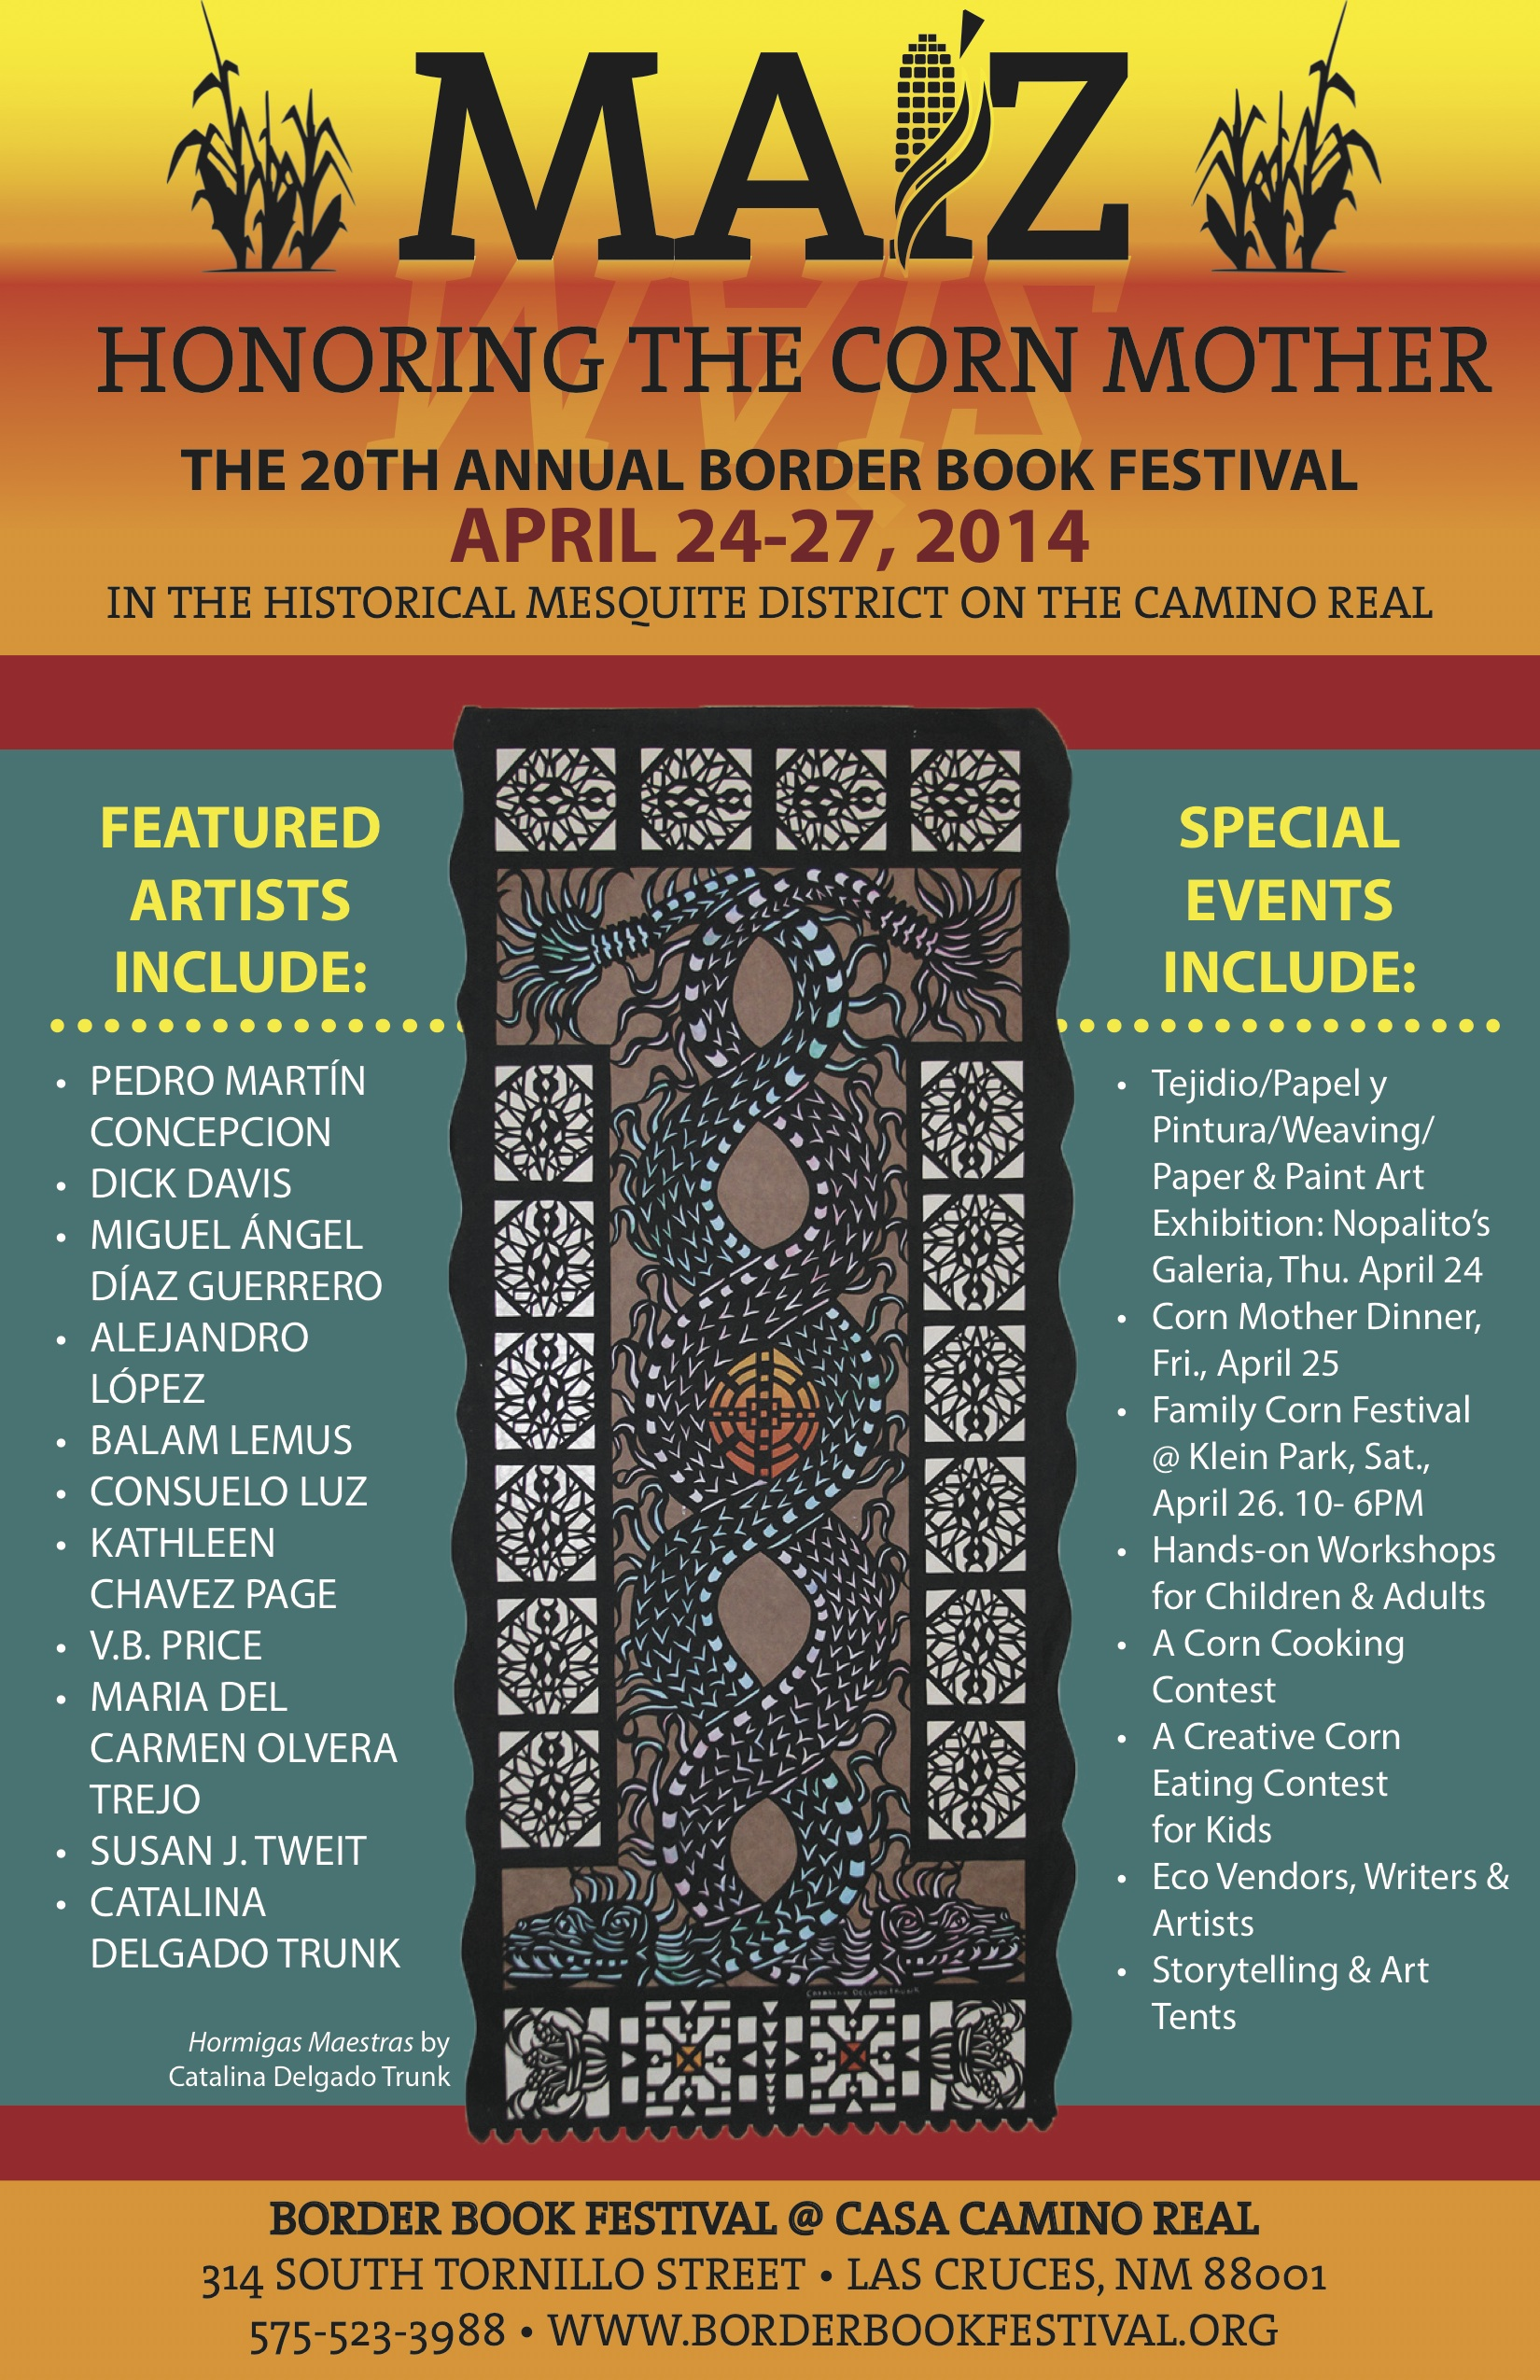 The 20th annual Border Book Festival opens next week in Las Cruces, NM.